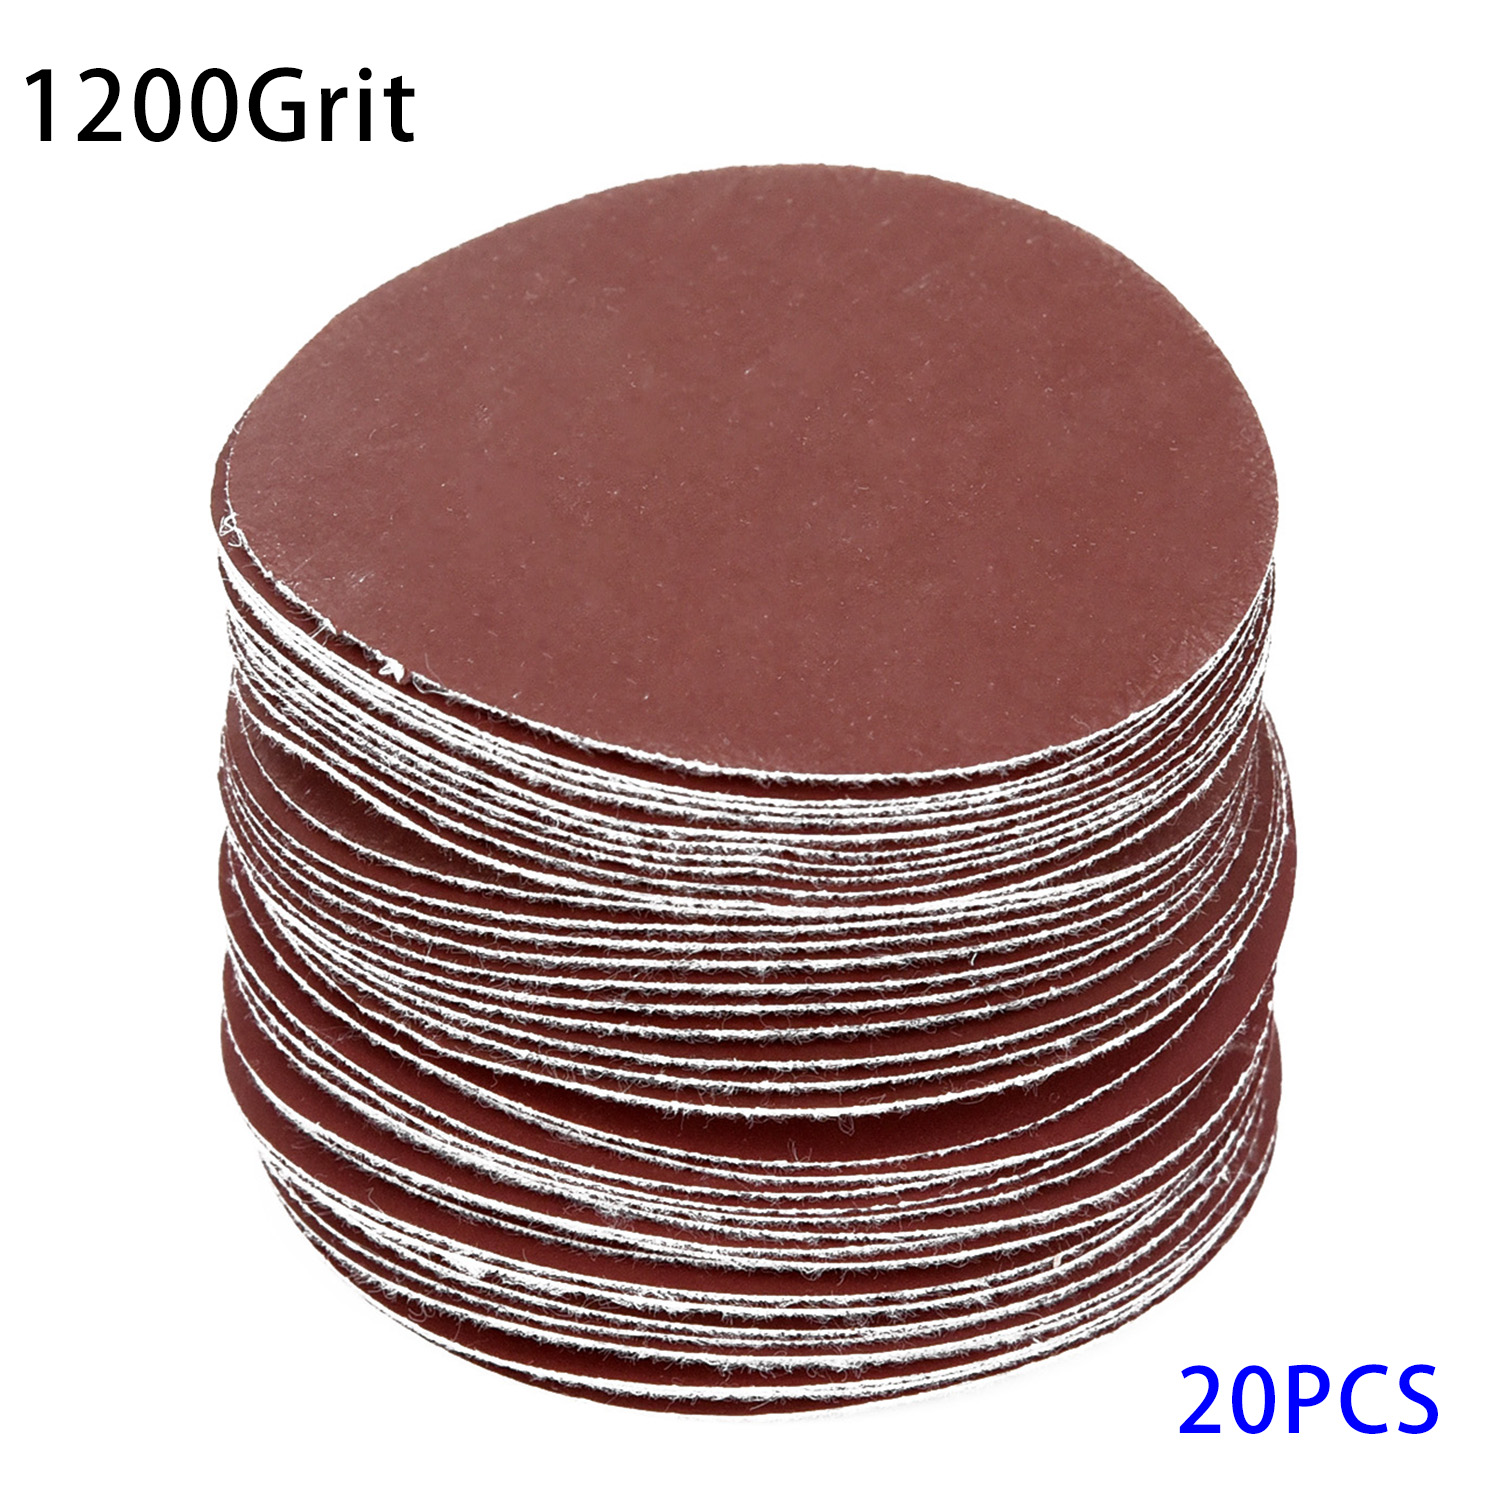 20pcs 3inch 75mm 1000 Grit Sander Discs Sanding Polishing Pads Sandpaper Set Pro